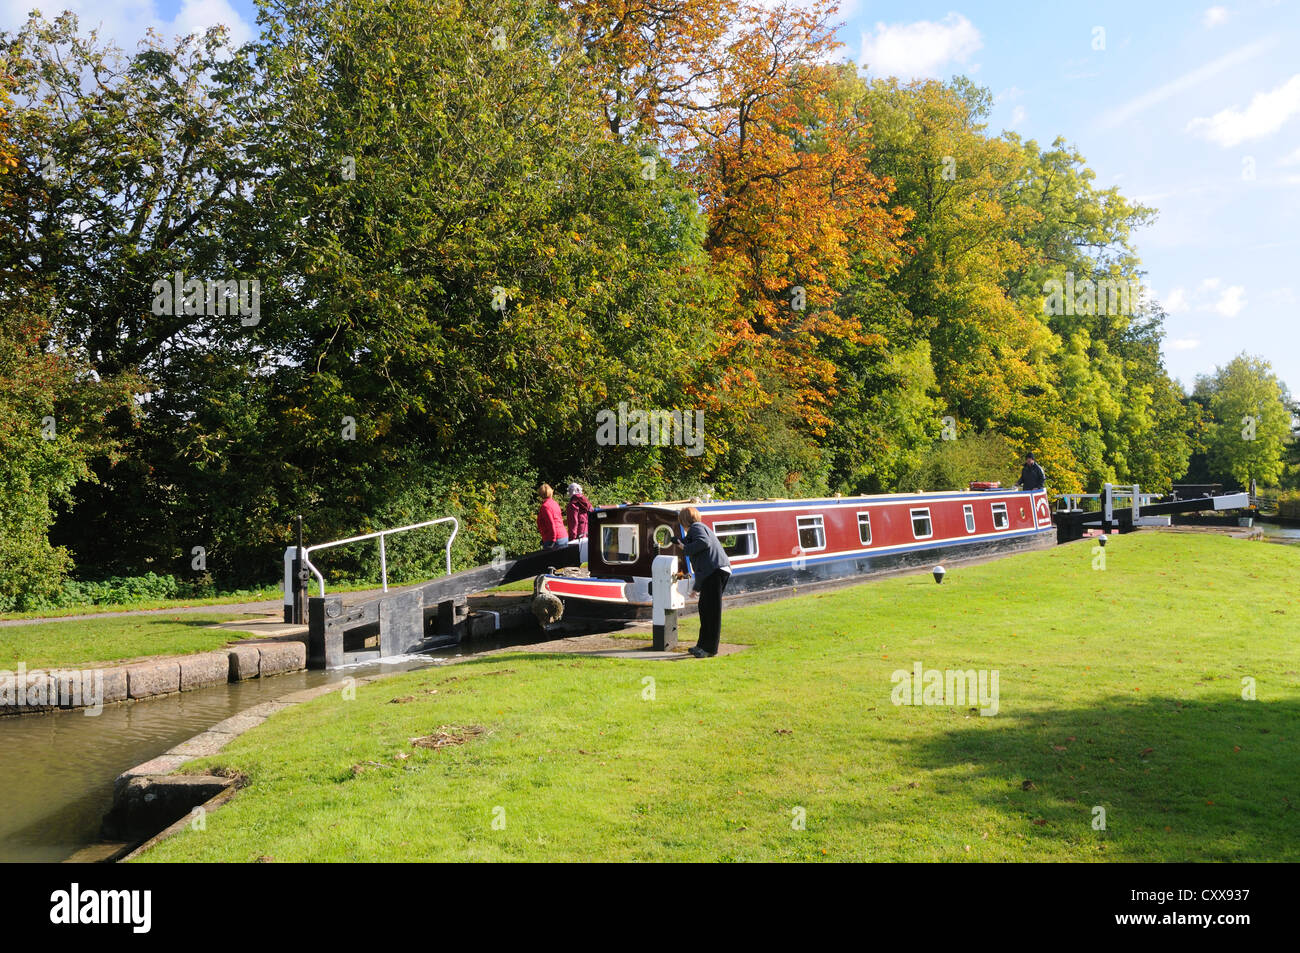 66' narrowboat 'Lord Portal' in Lock No. 2 of the Watford flight on the Grand Union Canal at Watford, - Stock Image